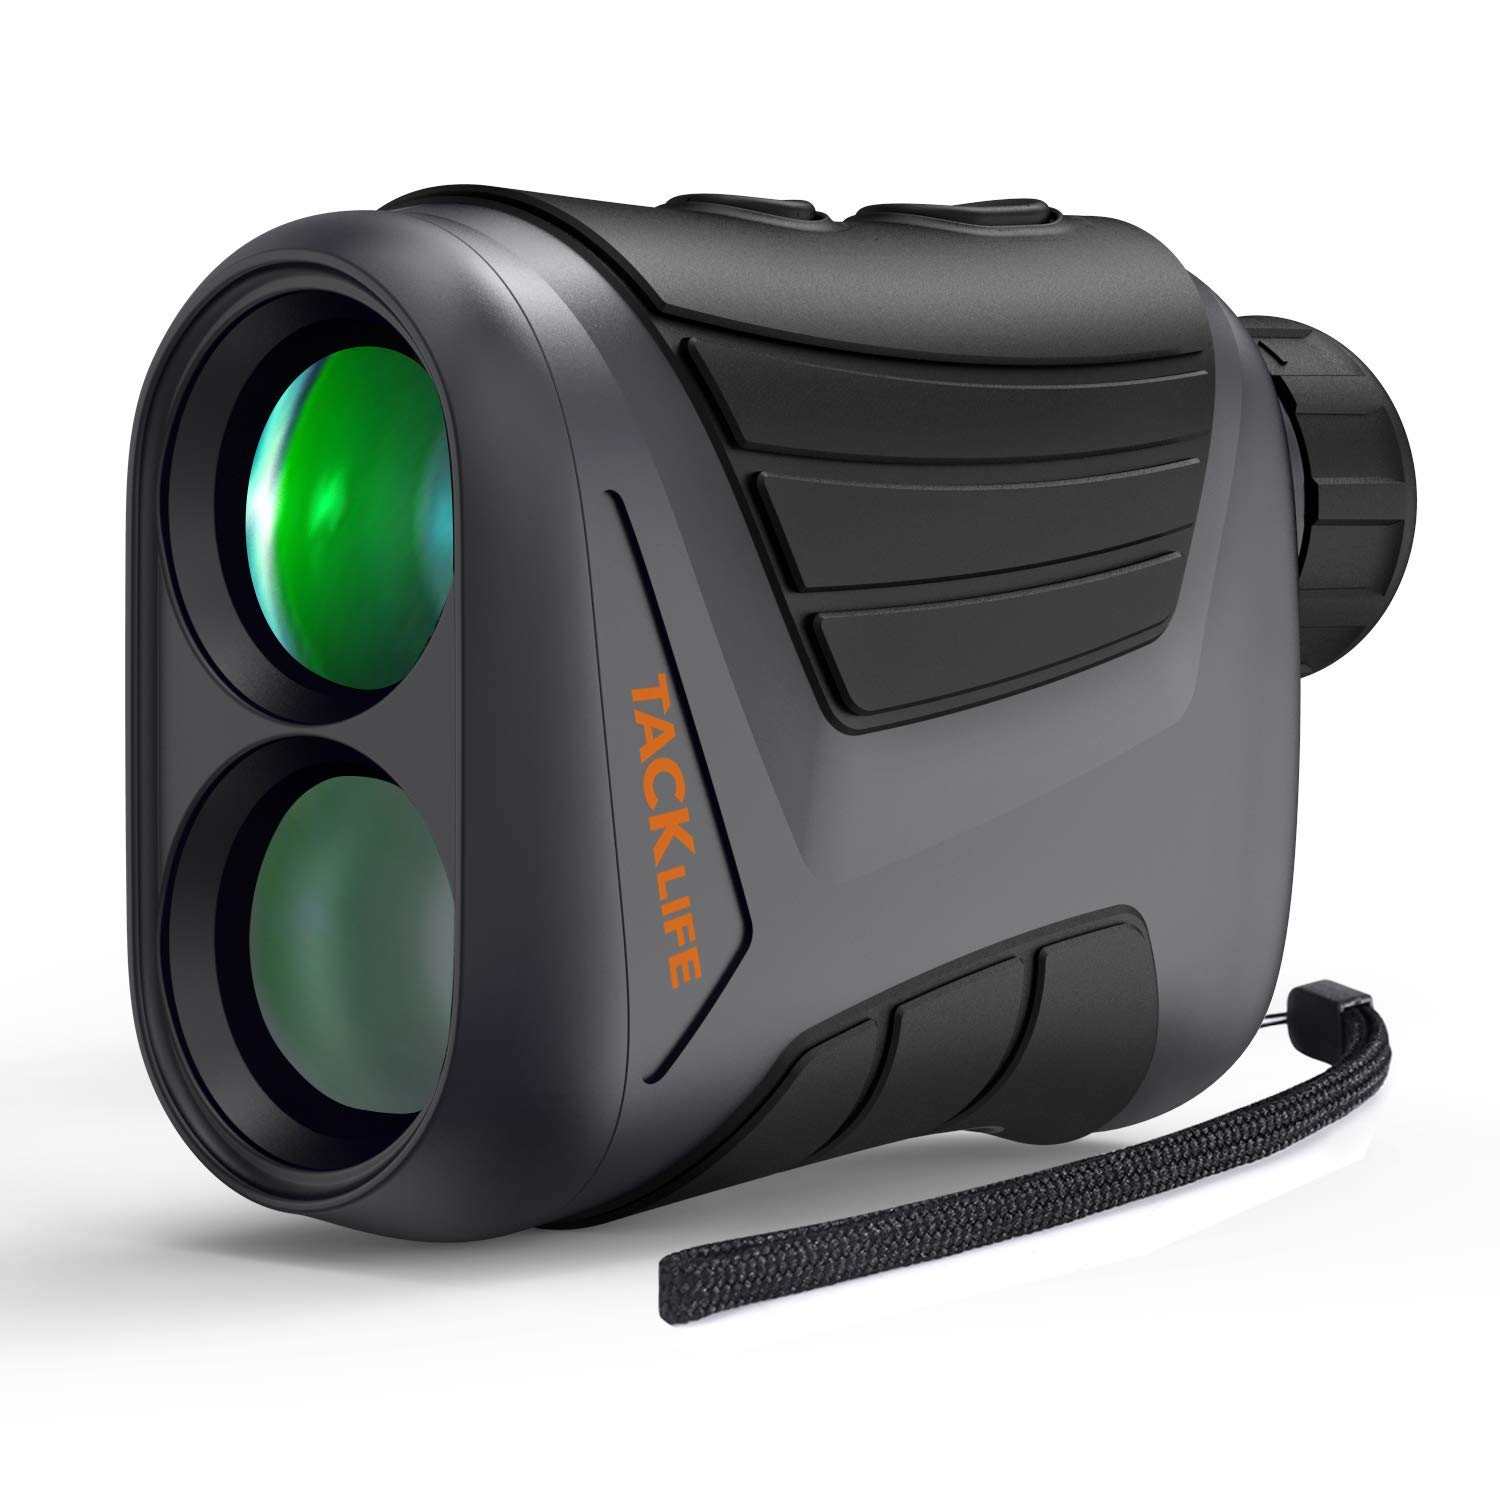 Golf Rangefinder 900 Yards- Tacklife 7X Laser Range Finder with Pinsensor, Range/Speed/Scan Mode for Golf, Hunting, Boating, Hiking, USB Charging Cable and Wrist Strap Included - MLR01 by TACKLIFE